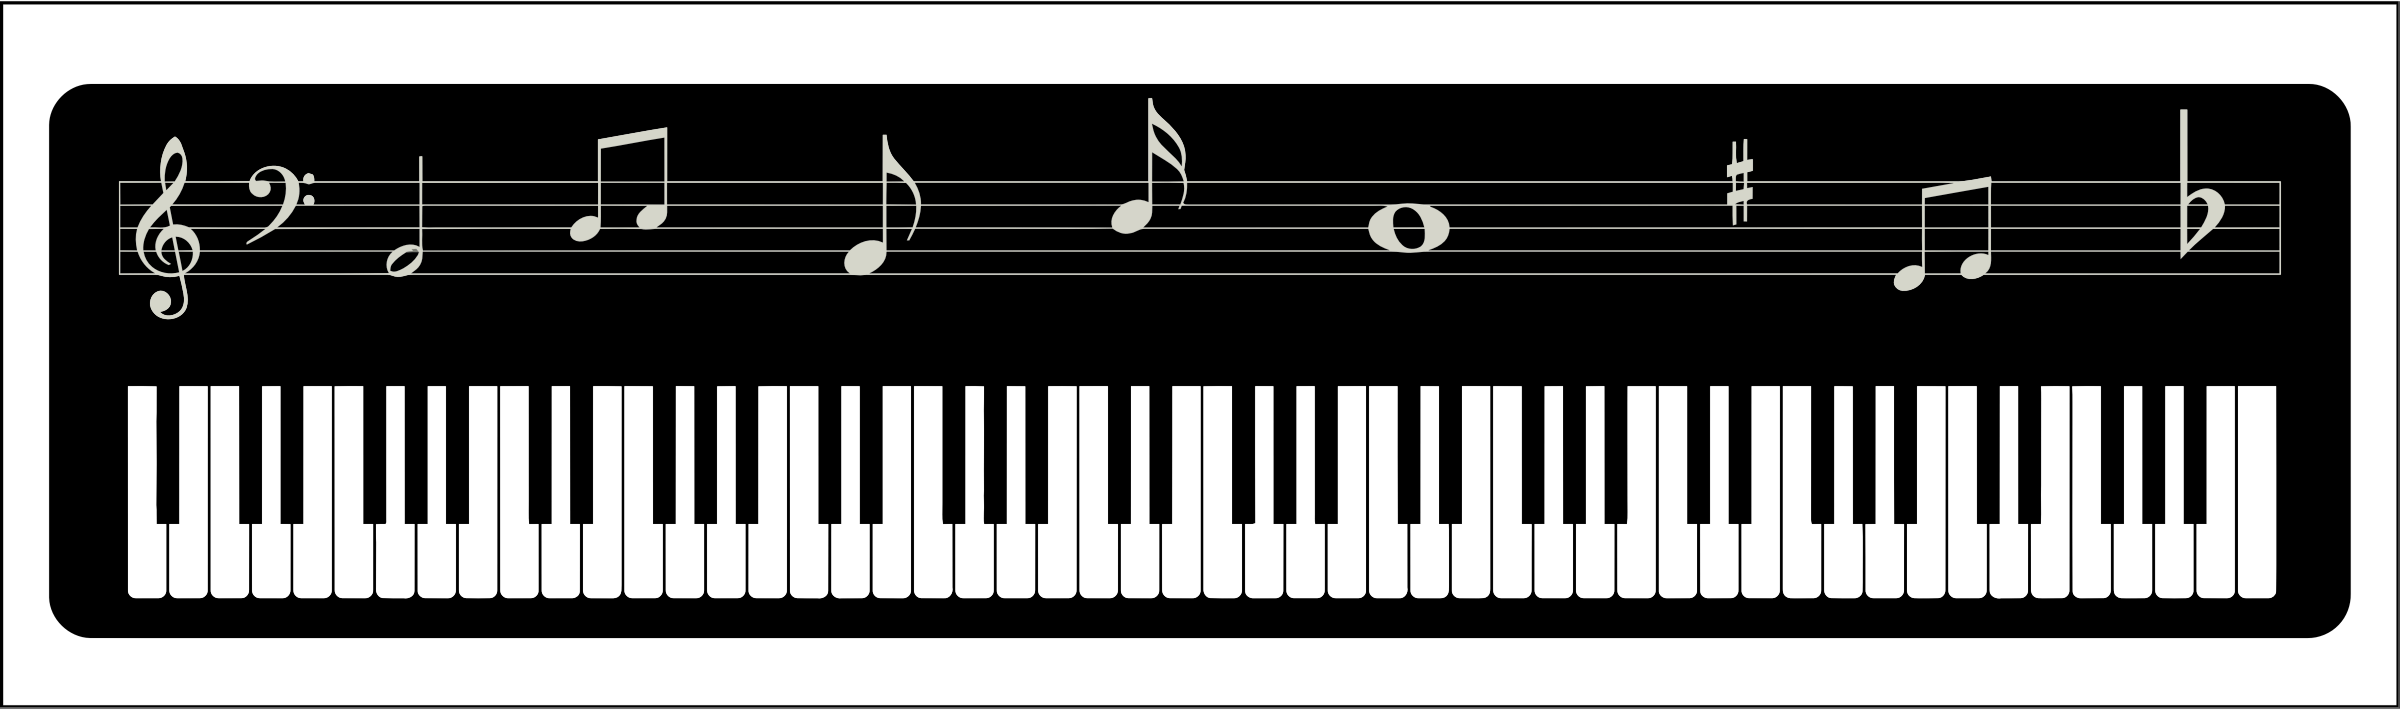 Clipart Piano Keyboard.